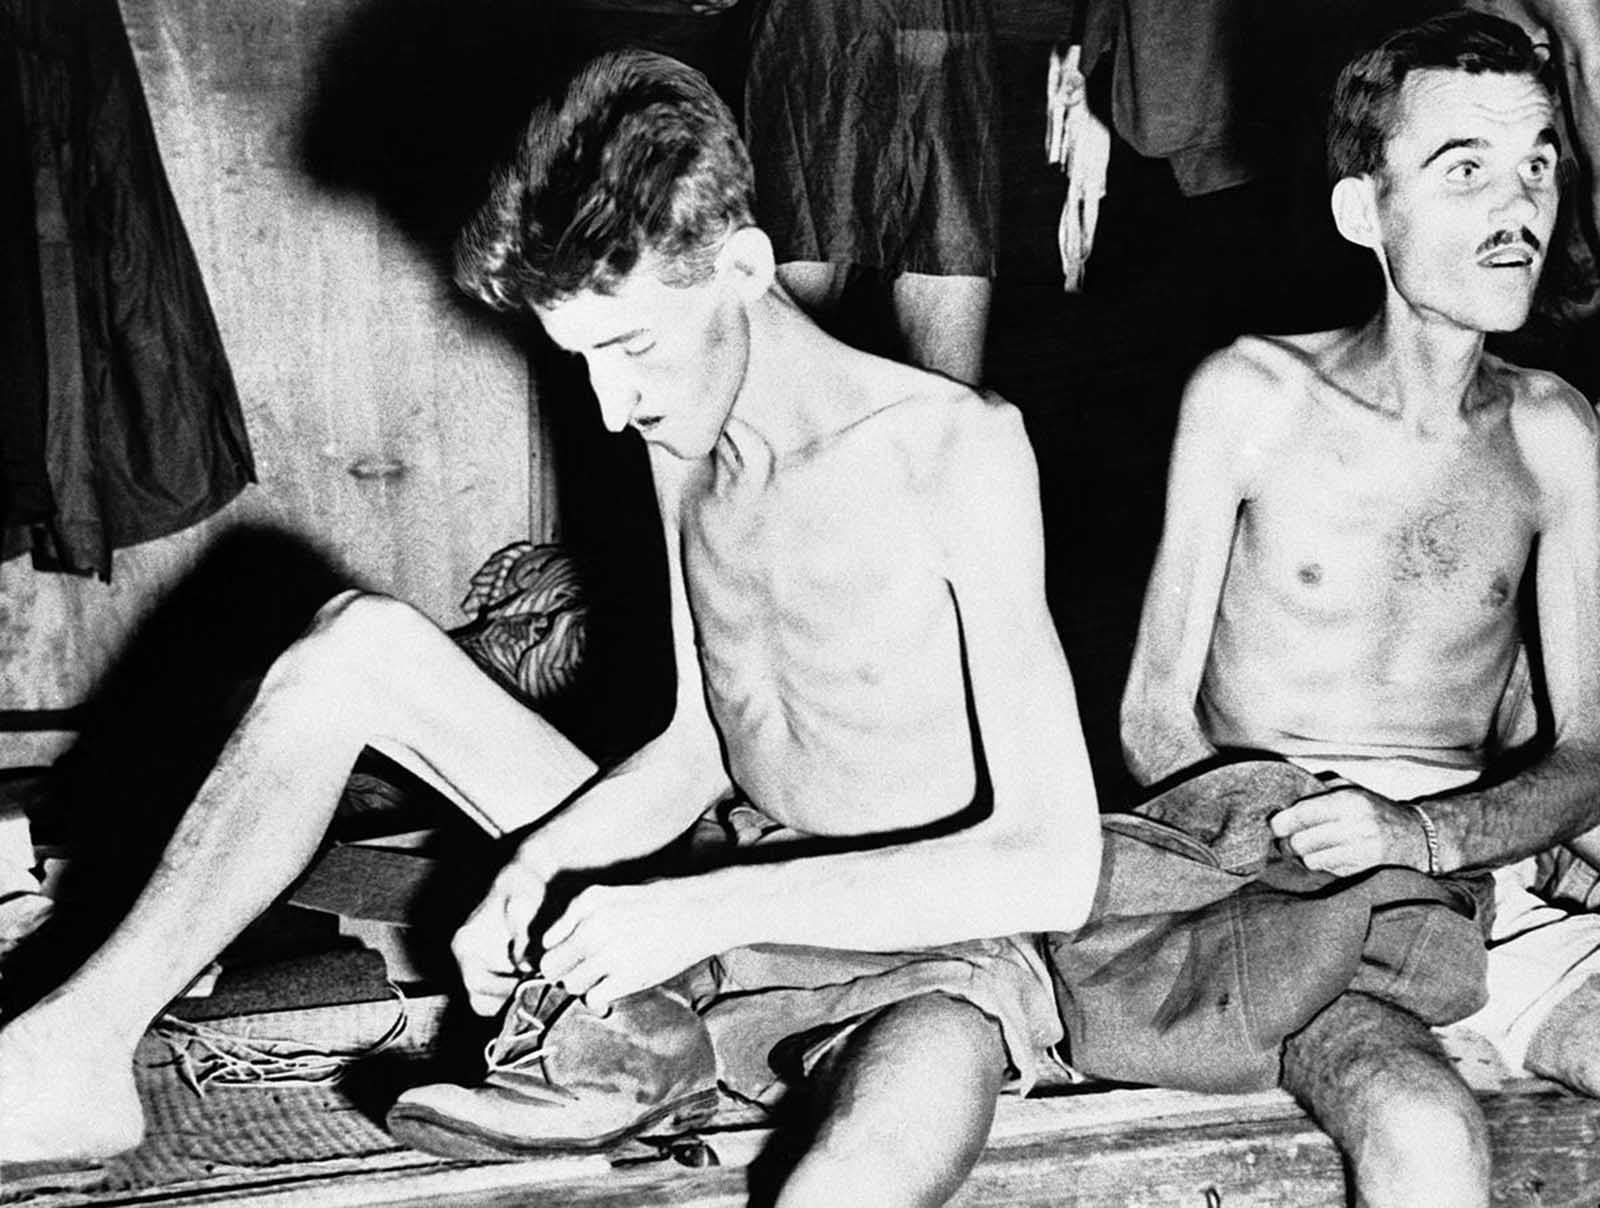 Gaunt and emaciated, but happy at their release from Japanese captivity, two Allied prisoners pack their meager belongings, after being freed near Yokohama, Japan, on September 11, 1945, by men of an American mercy squadron of the U.S. Navy.